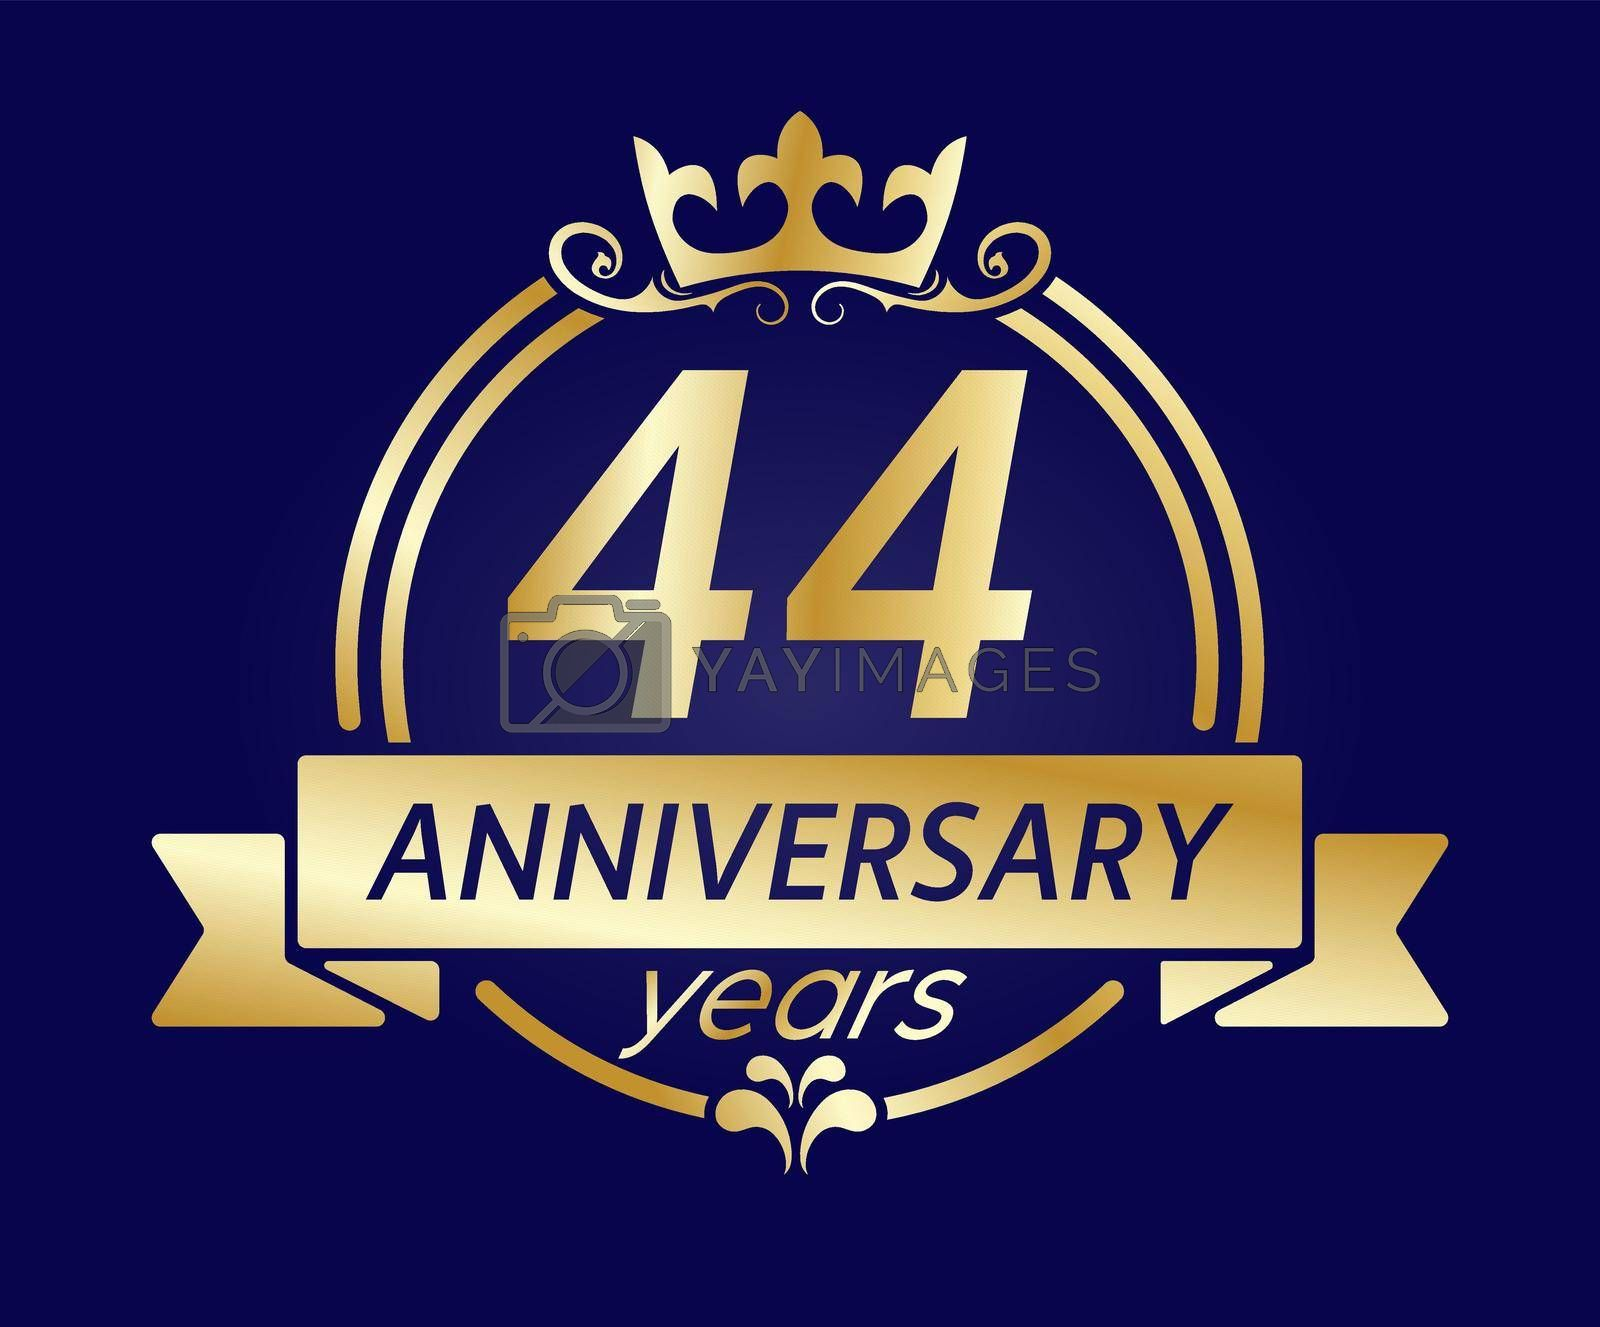 Royalty free image of 44 year anniversary. Gold round frame with crown and ribbon. Vector illustration for birthday, wedding or anniversary greetings, for creative design by Grommik